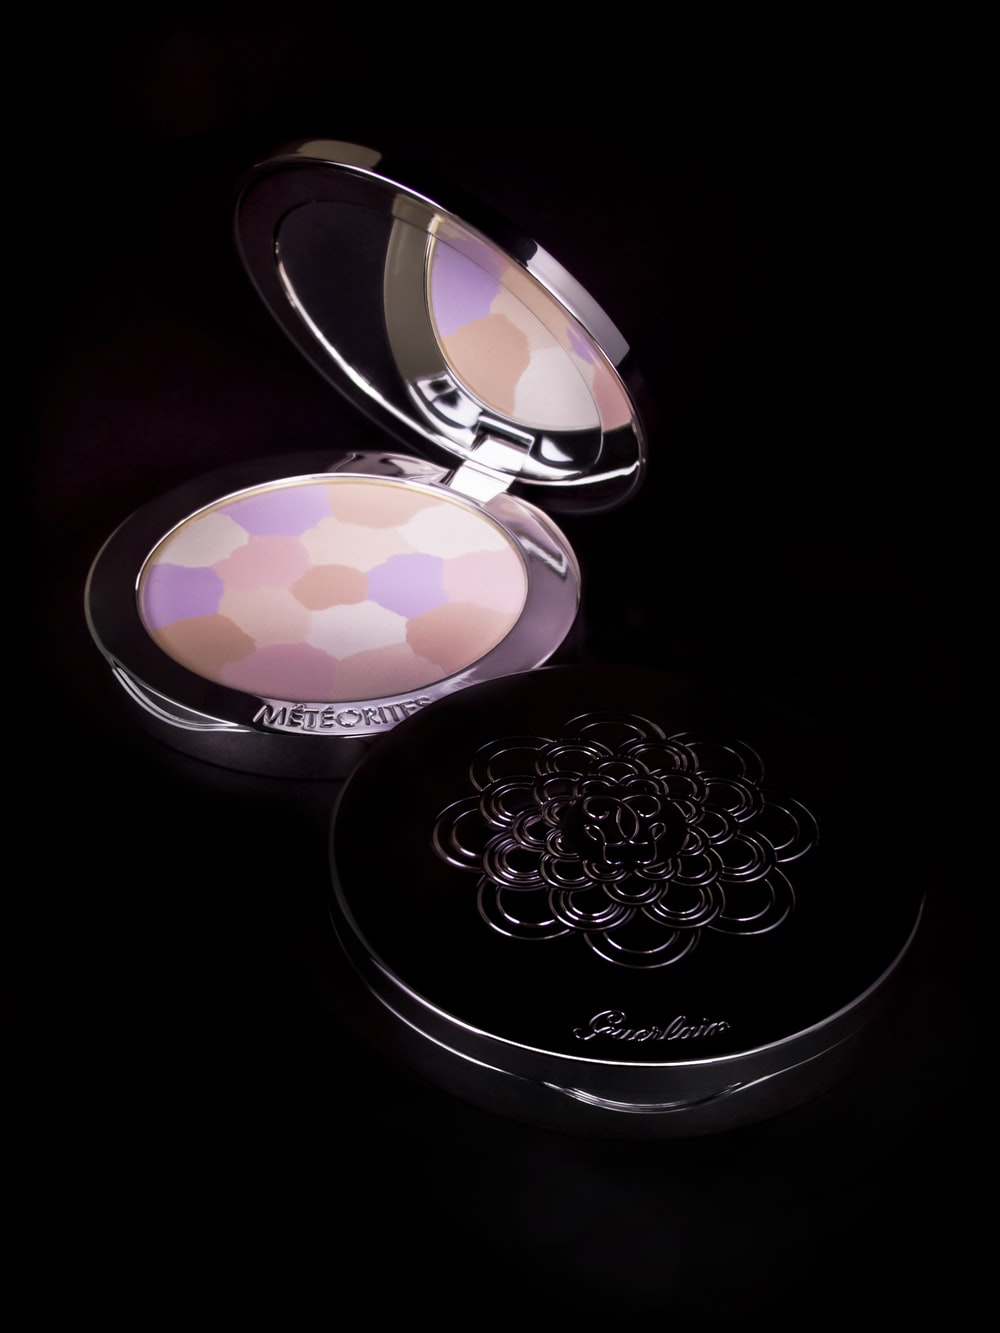 two pressed powders